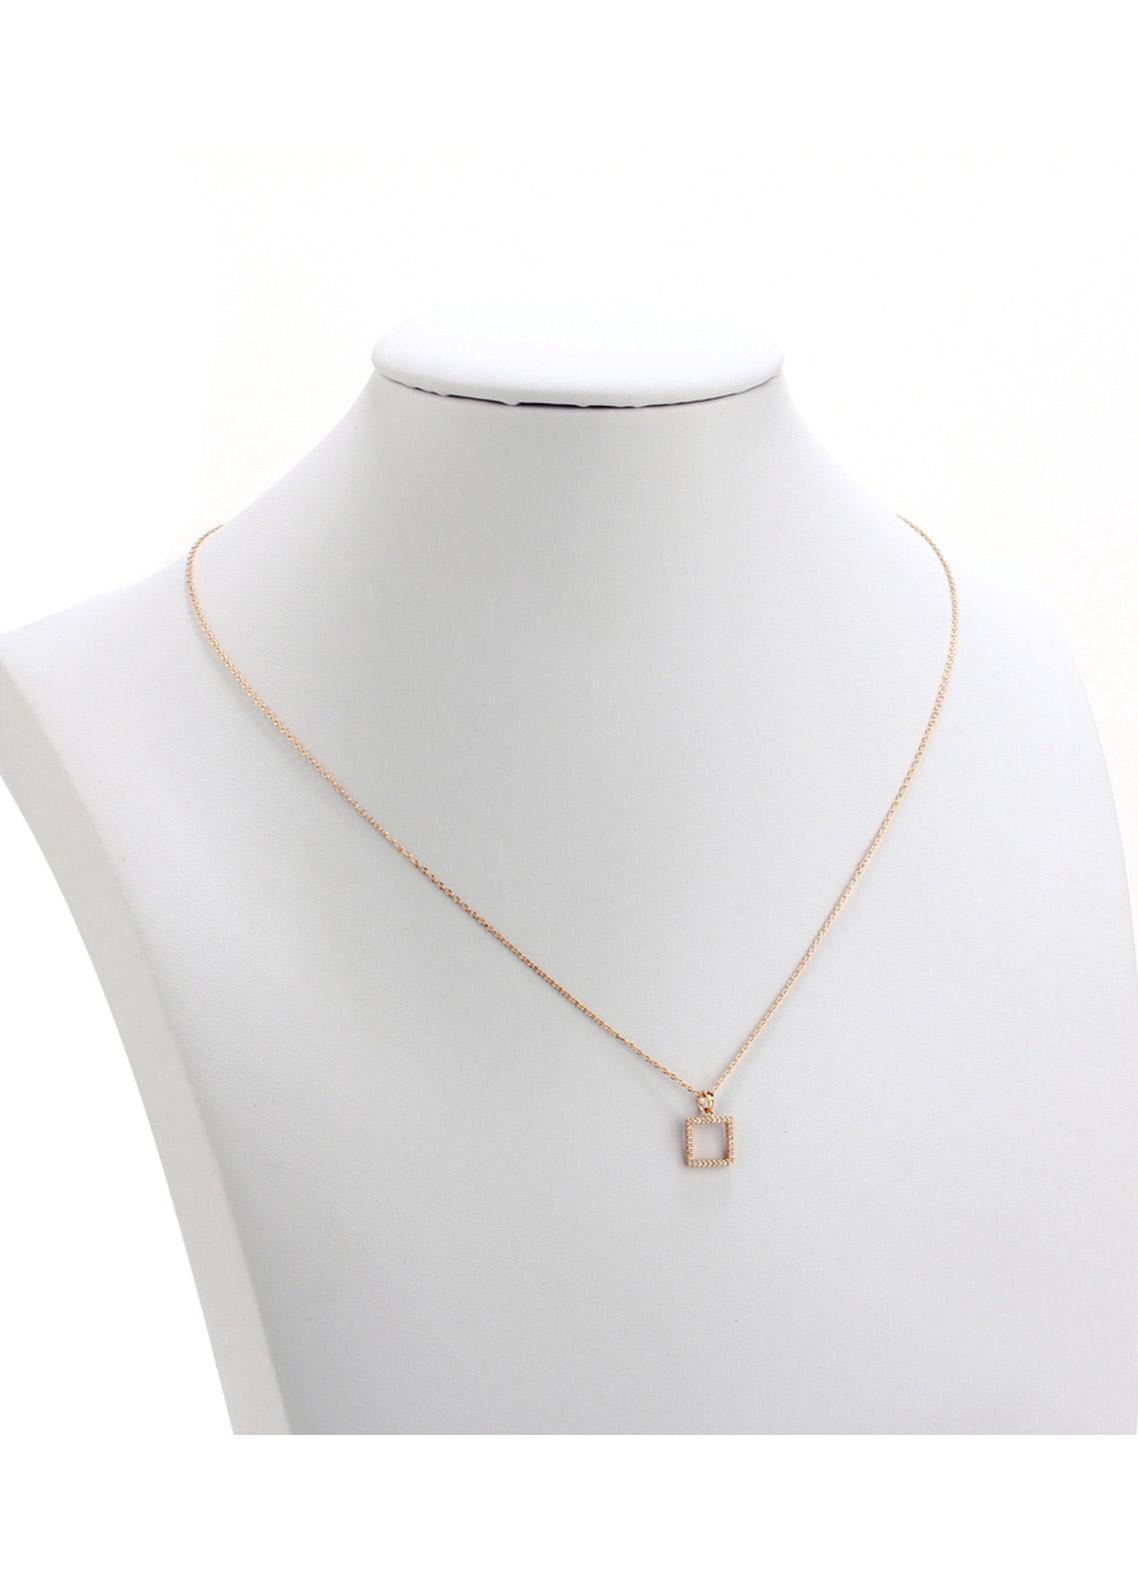 Anna Grace London by Silk Avenue Gold Plated Crystal Square Necklace AGN0051 - Ladies Jewellery